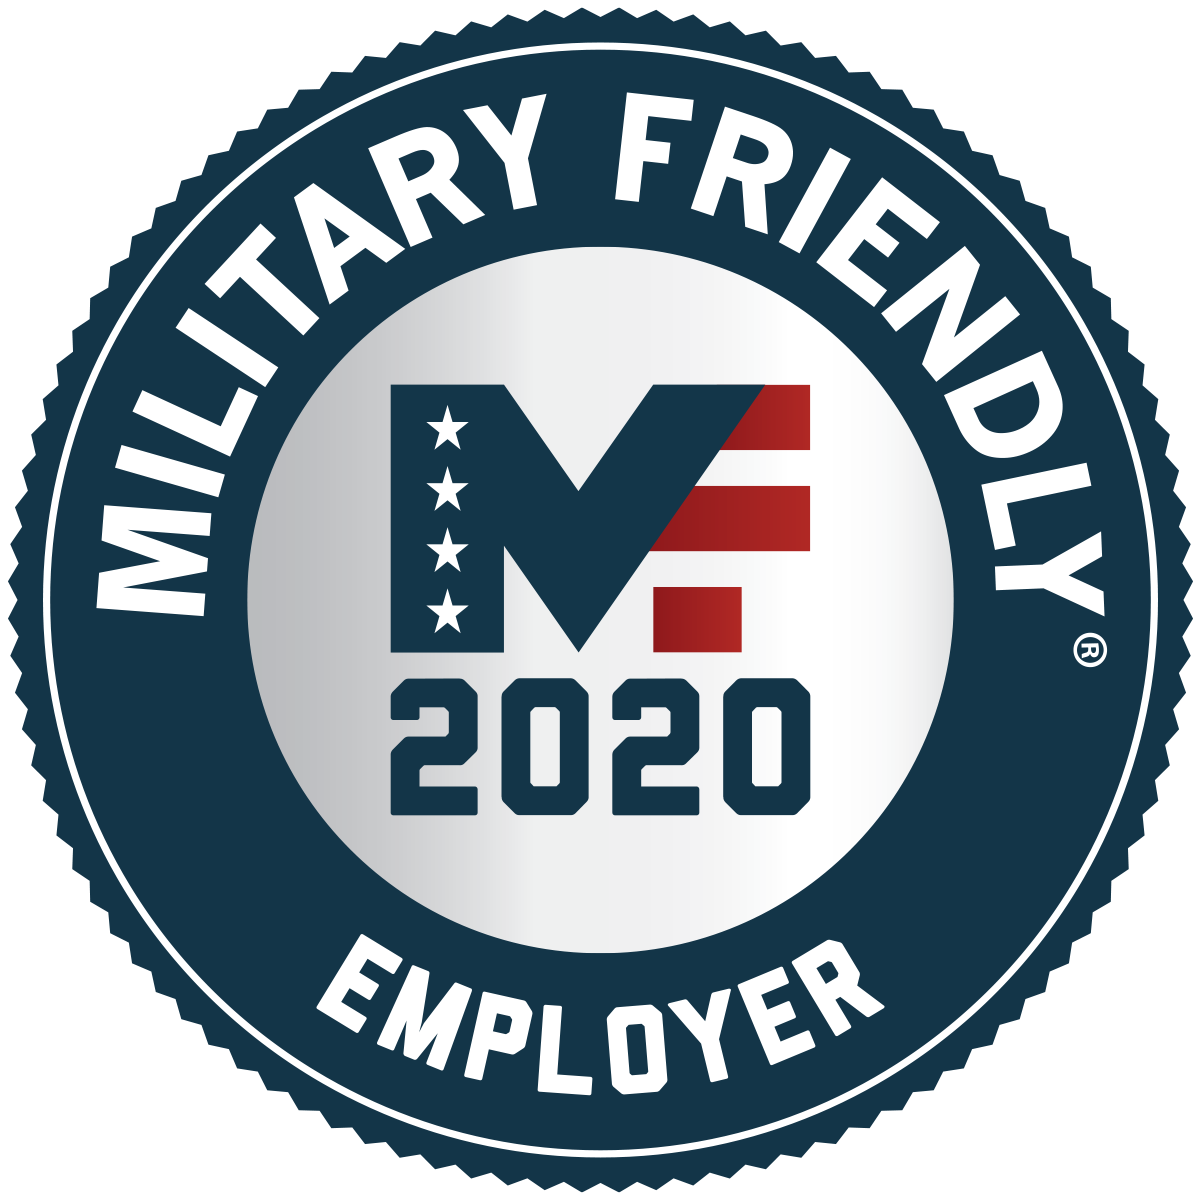 Military Spouse Friendly Employer Award